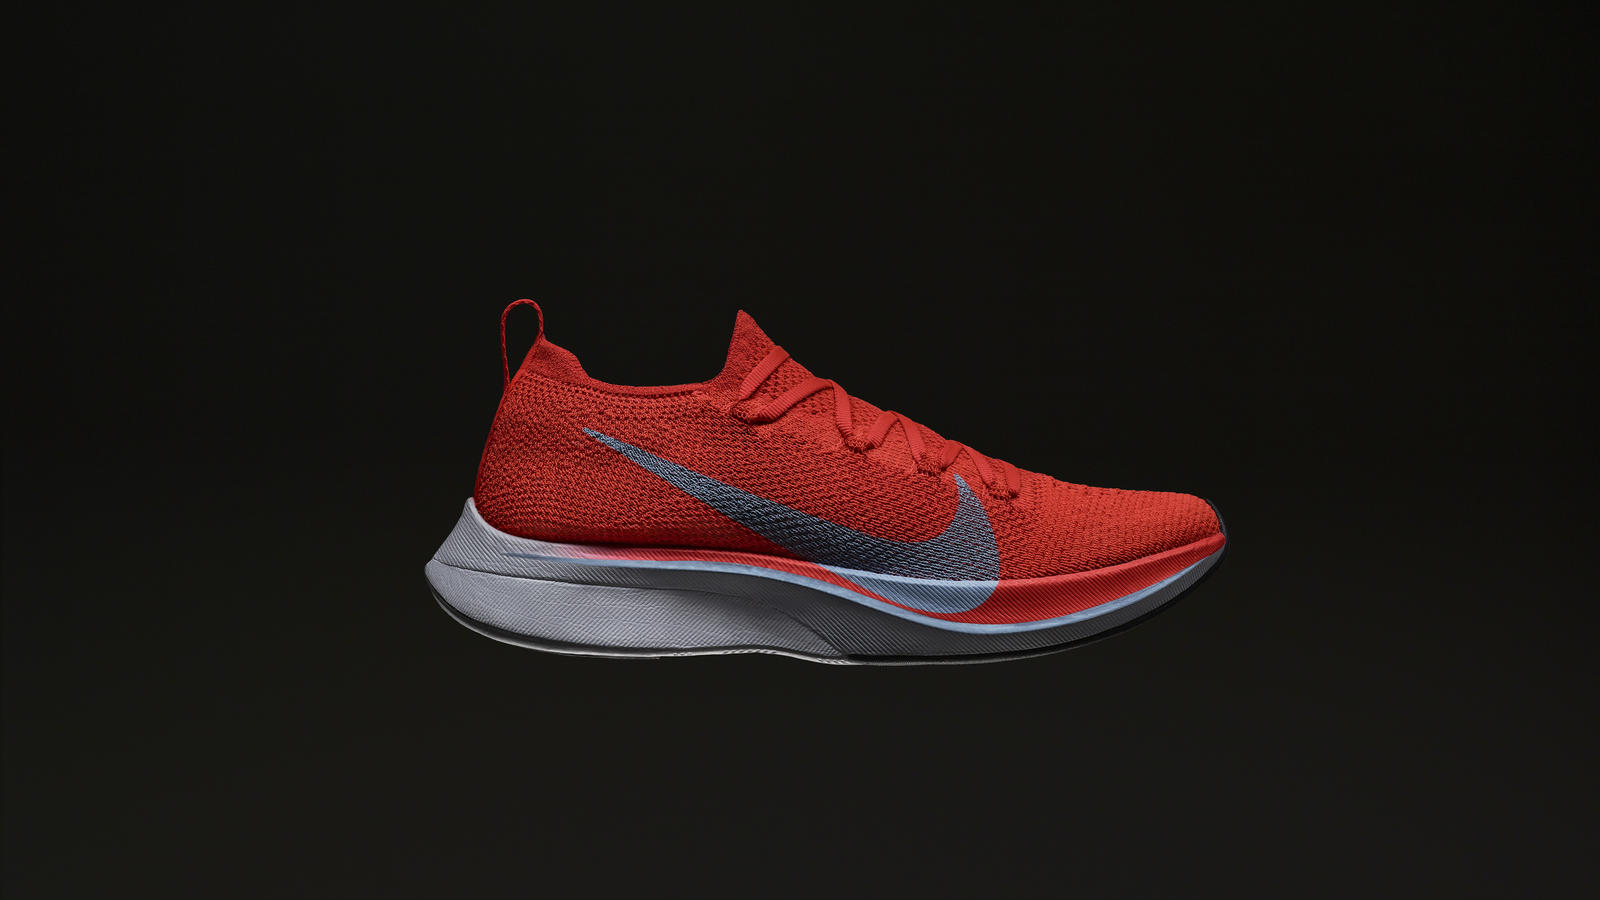 2d7167fa8057b How to Get the Nike Zoom Vaporfly 4% - Nike News